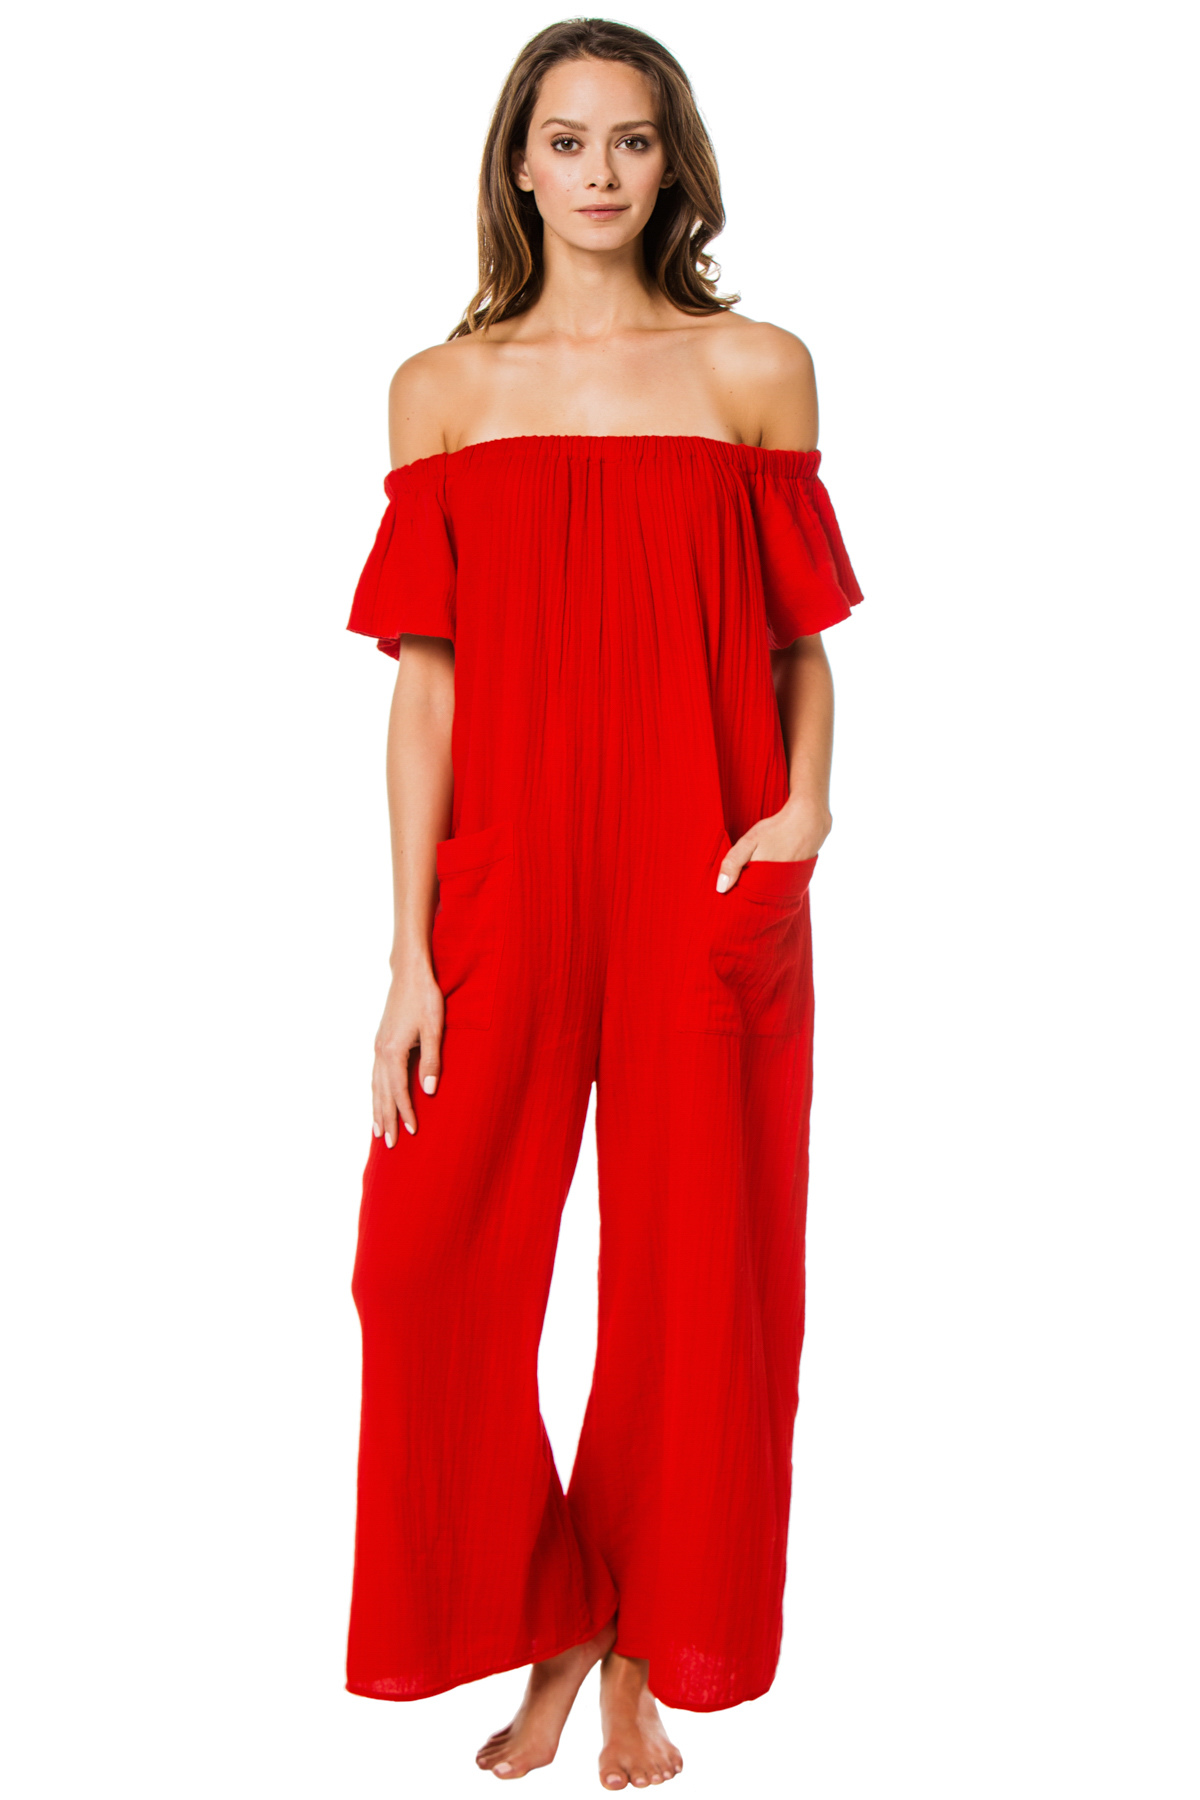 Blanche Off the Shoulder Jumpsuit - Red 1